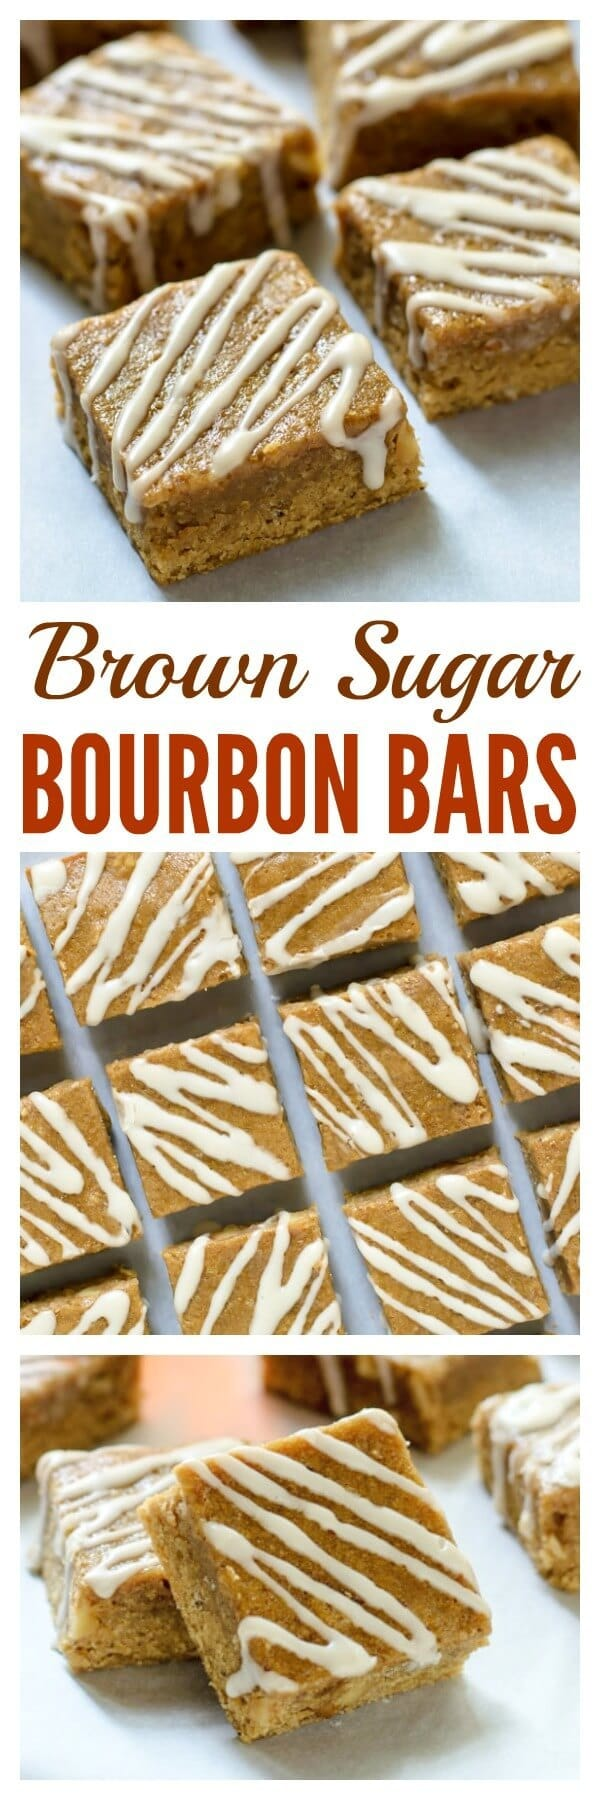 Maple Brown Sugar Bourbon Bars. If you like blondies, you will go crazy for these buttery, melt-in-your mouth bars.